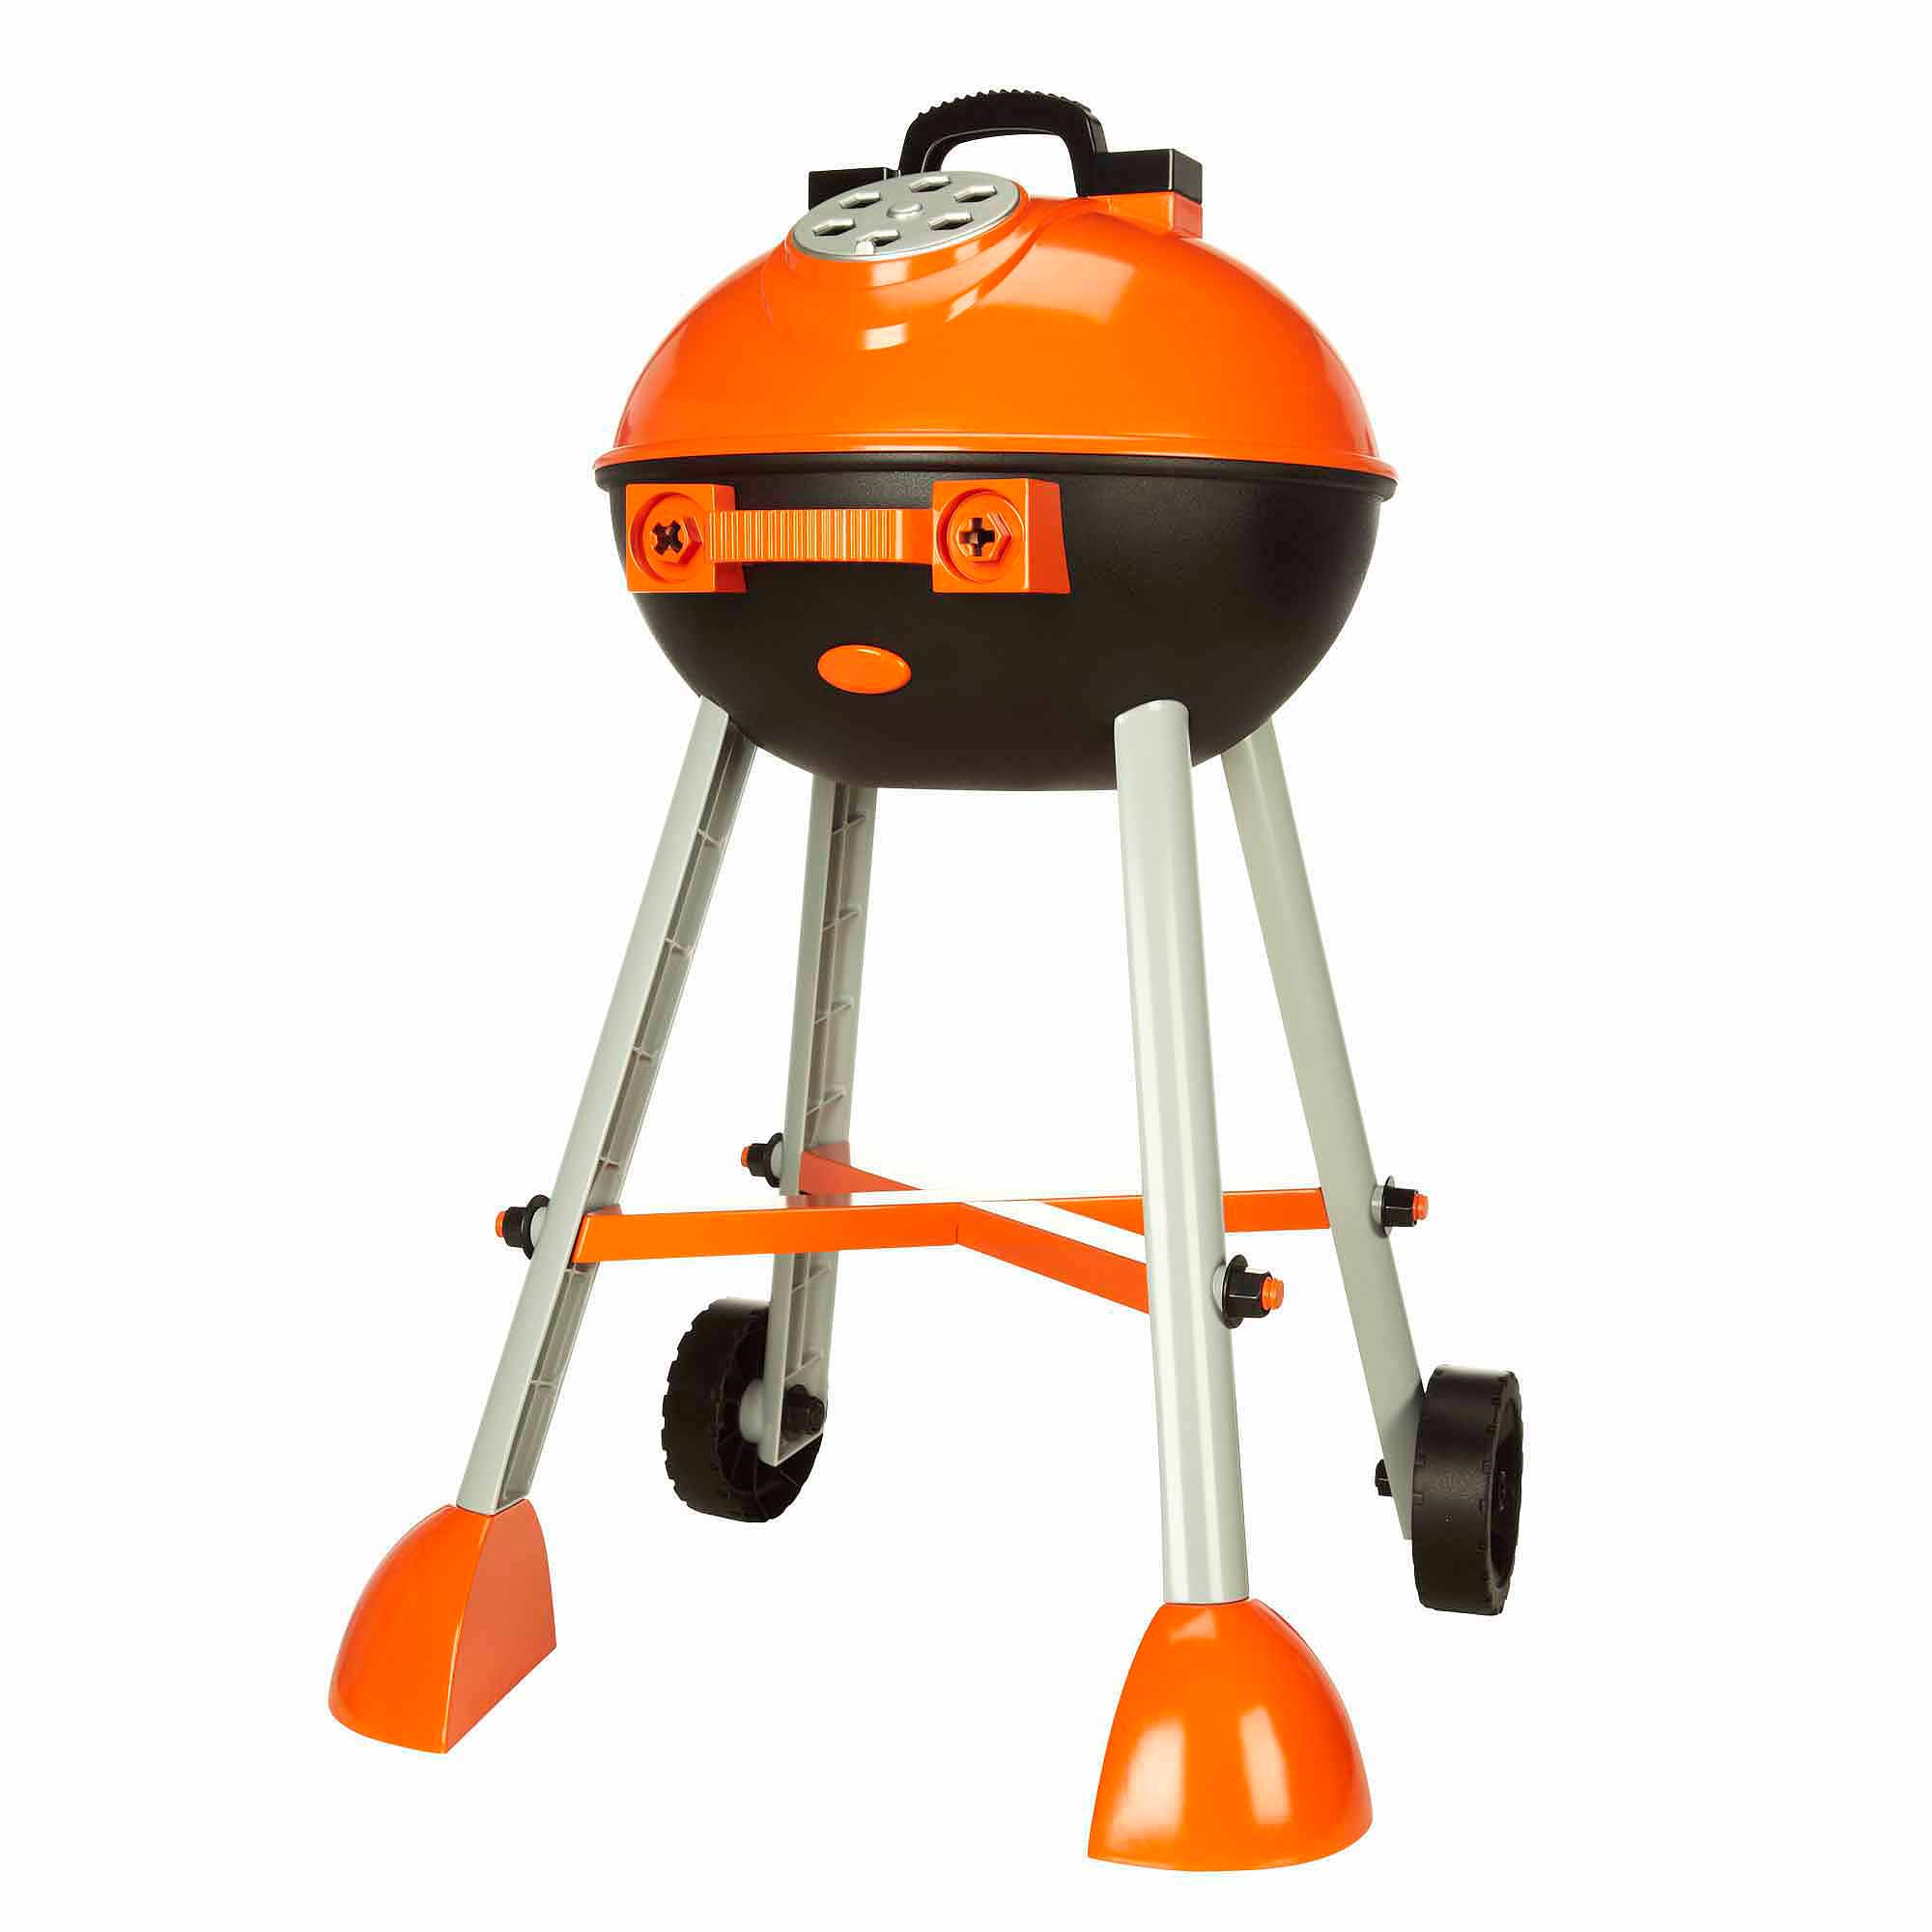 Black & Decker Junior BBQ Grill